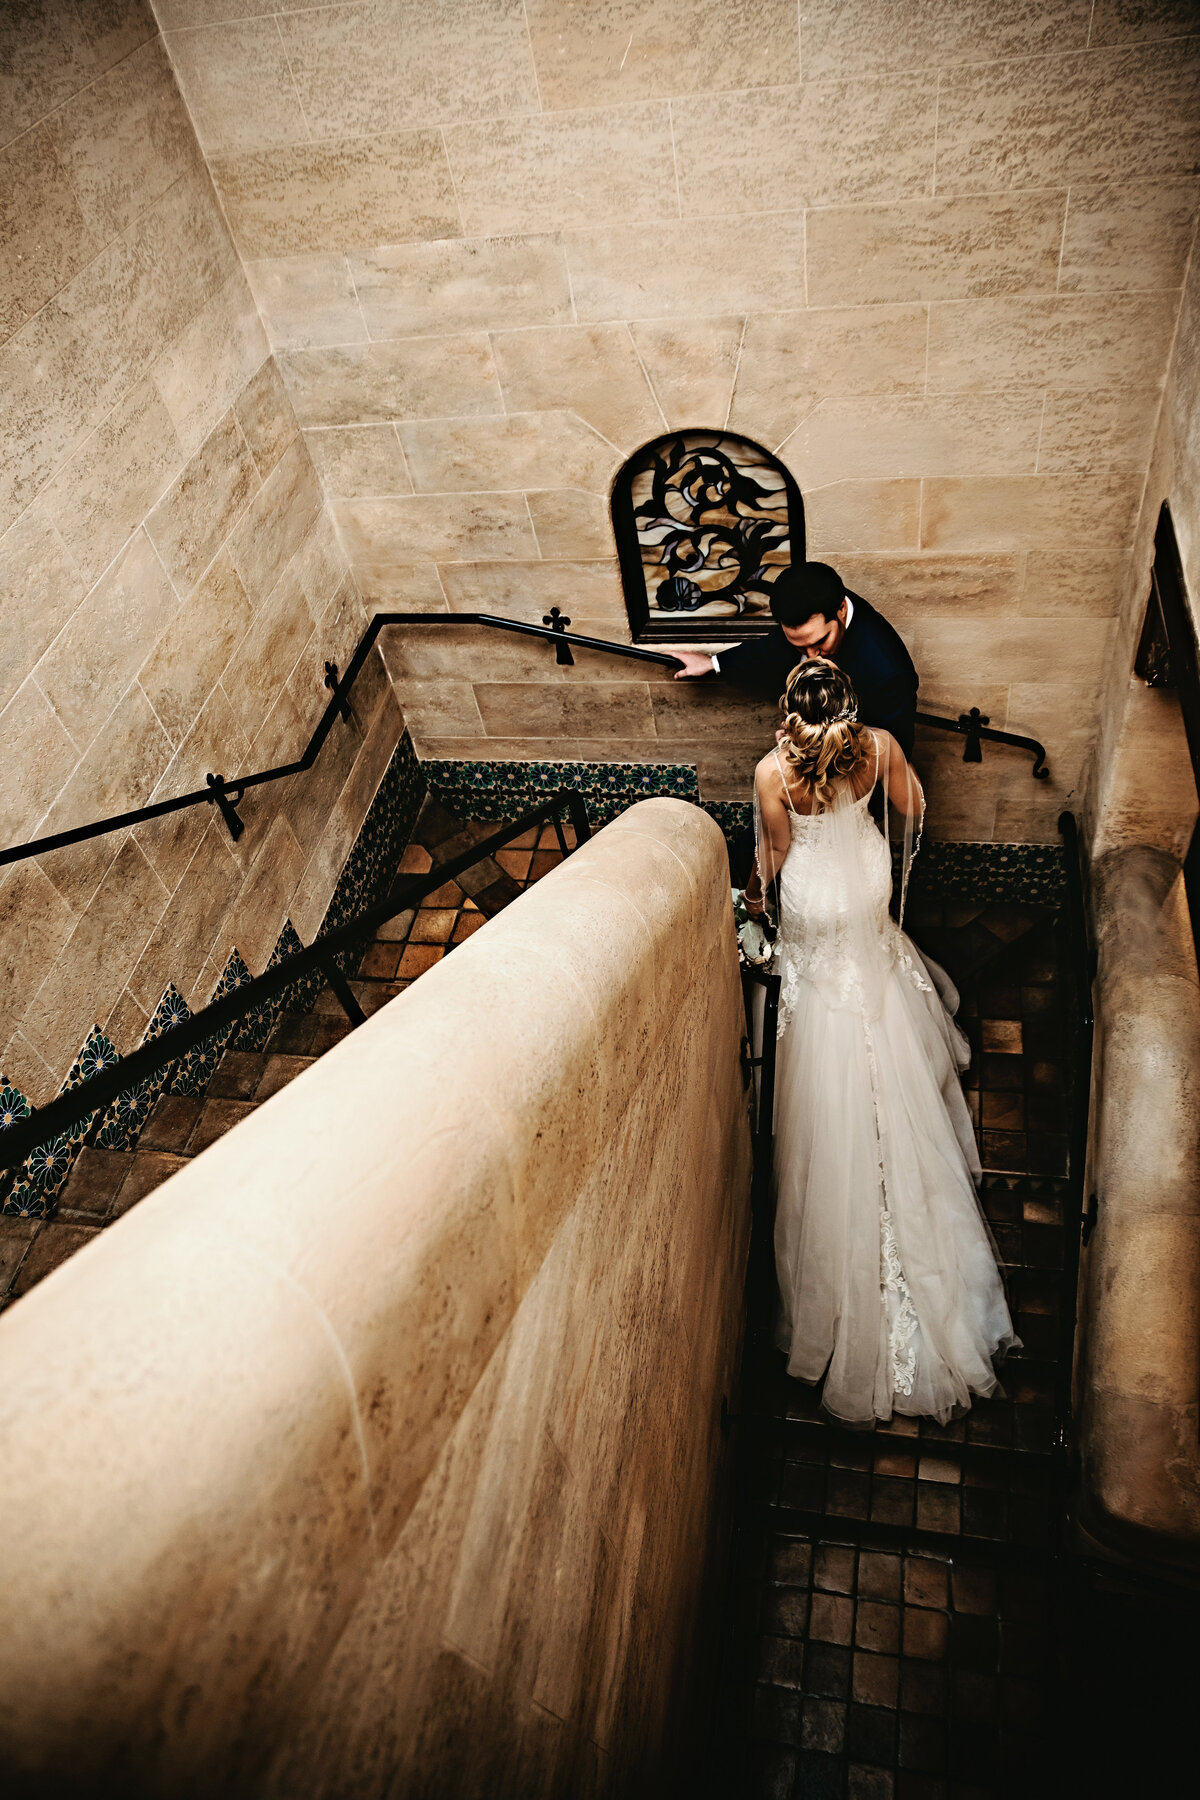 A picture of the bride and groom in a private moment, climbing a vintage stone stairway at their wedding venue, showing the wedding dress from behind by Garry & Stacy Photography Co - Tampa wedding photographer